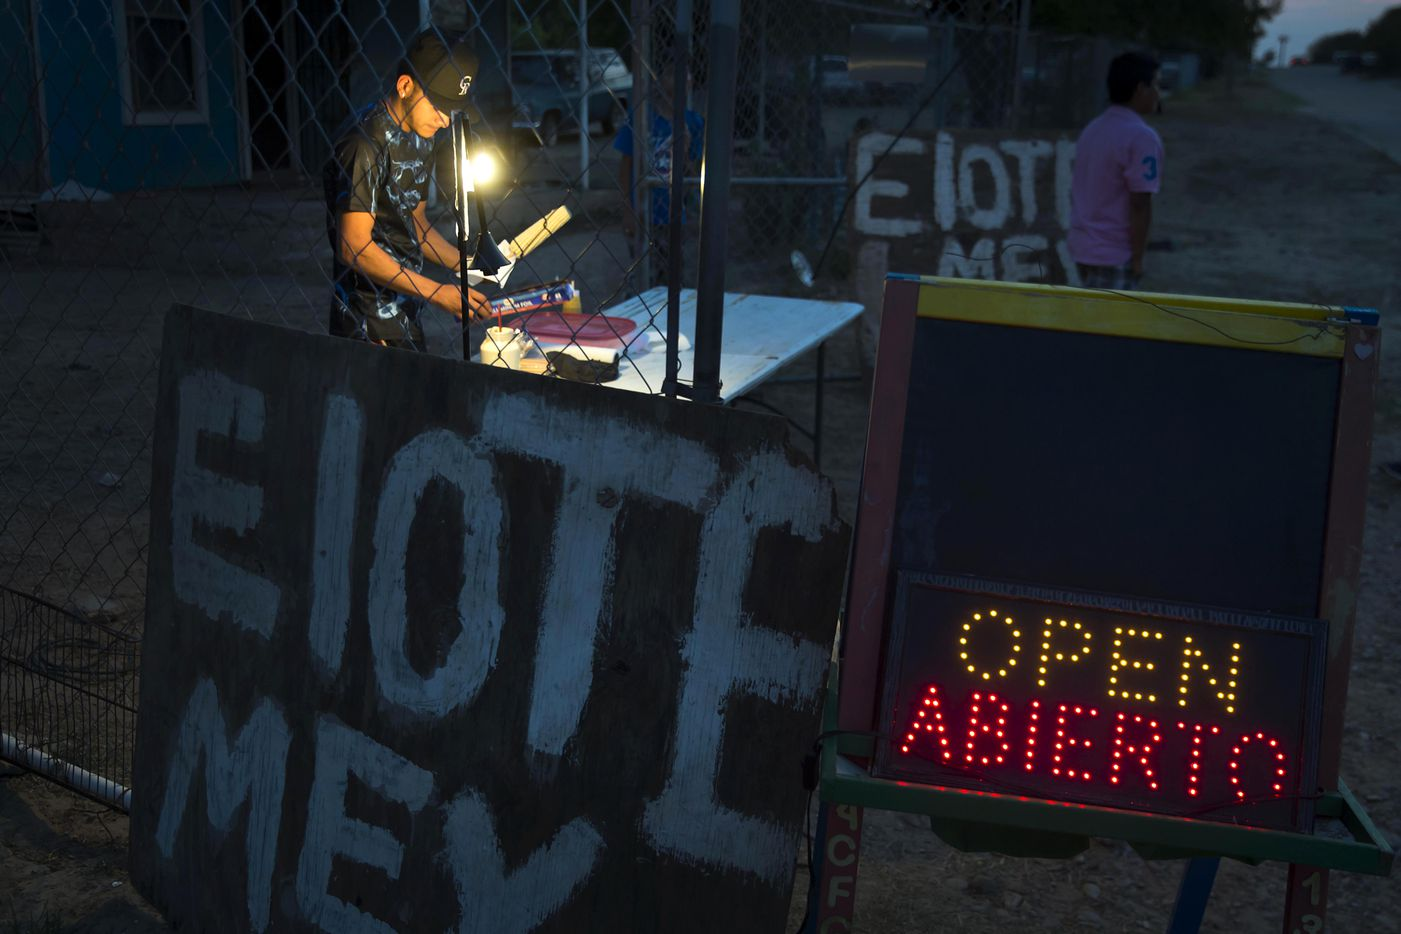 Cesar Rivera sells Elotes (grilled Mexican street corn) outside his grandmother's home in El Cenizo, Texas.